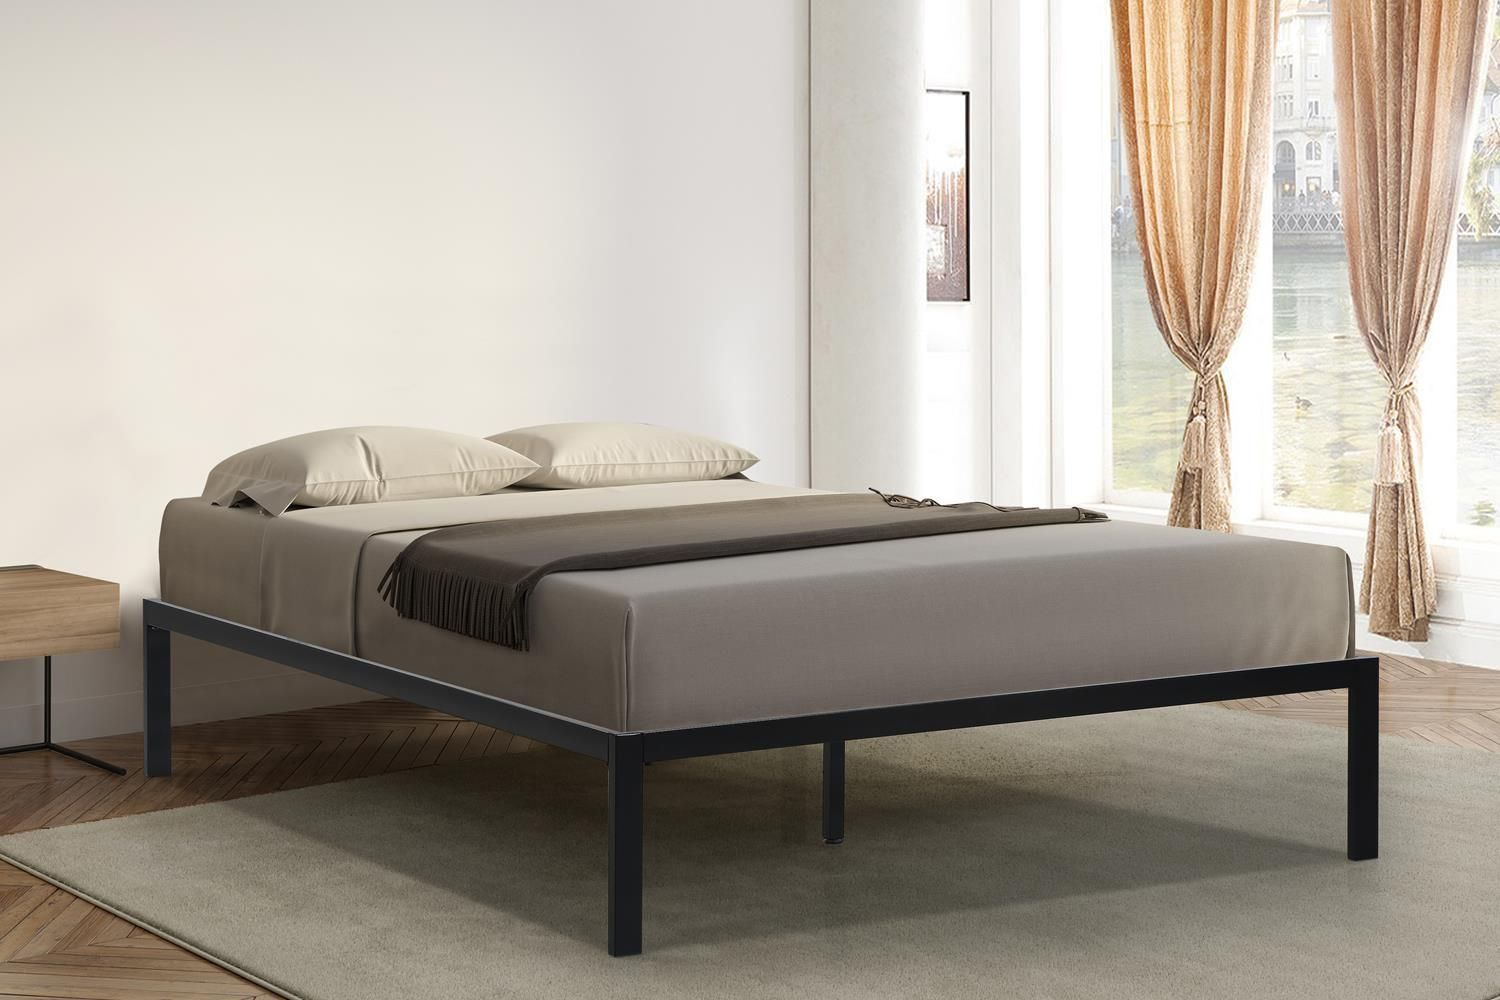 Oliver Smith® Heavy Duty Black Iron Metal Platform Bed